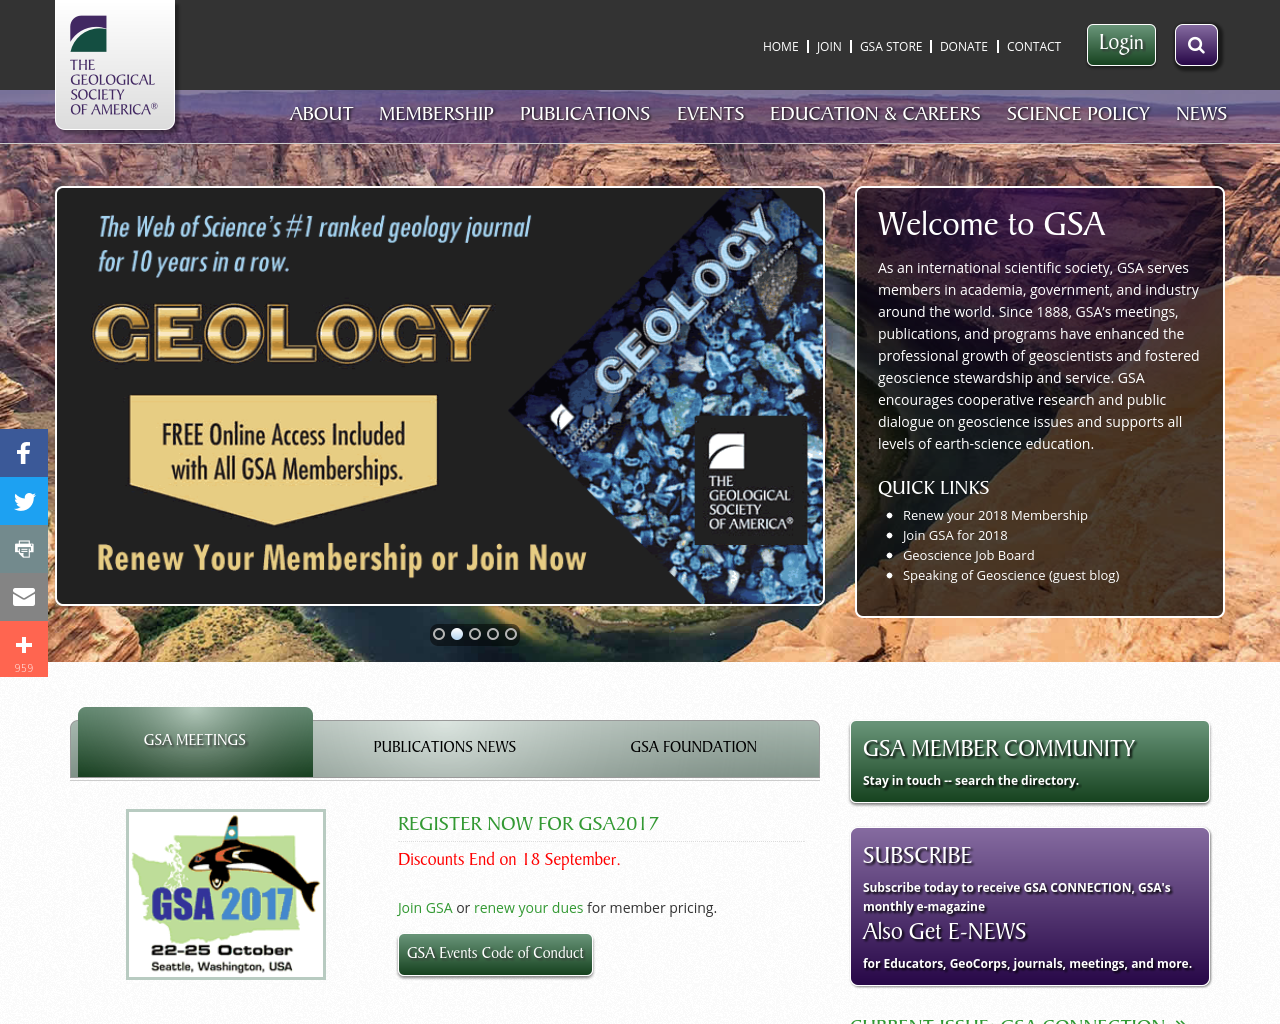 Geological-Society-Of-America-Advertising-Reviews-Pricing